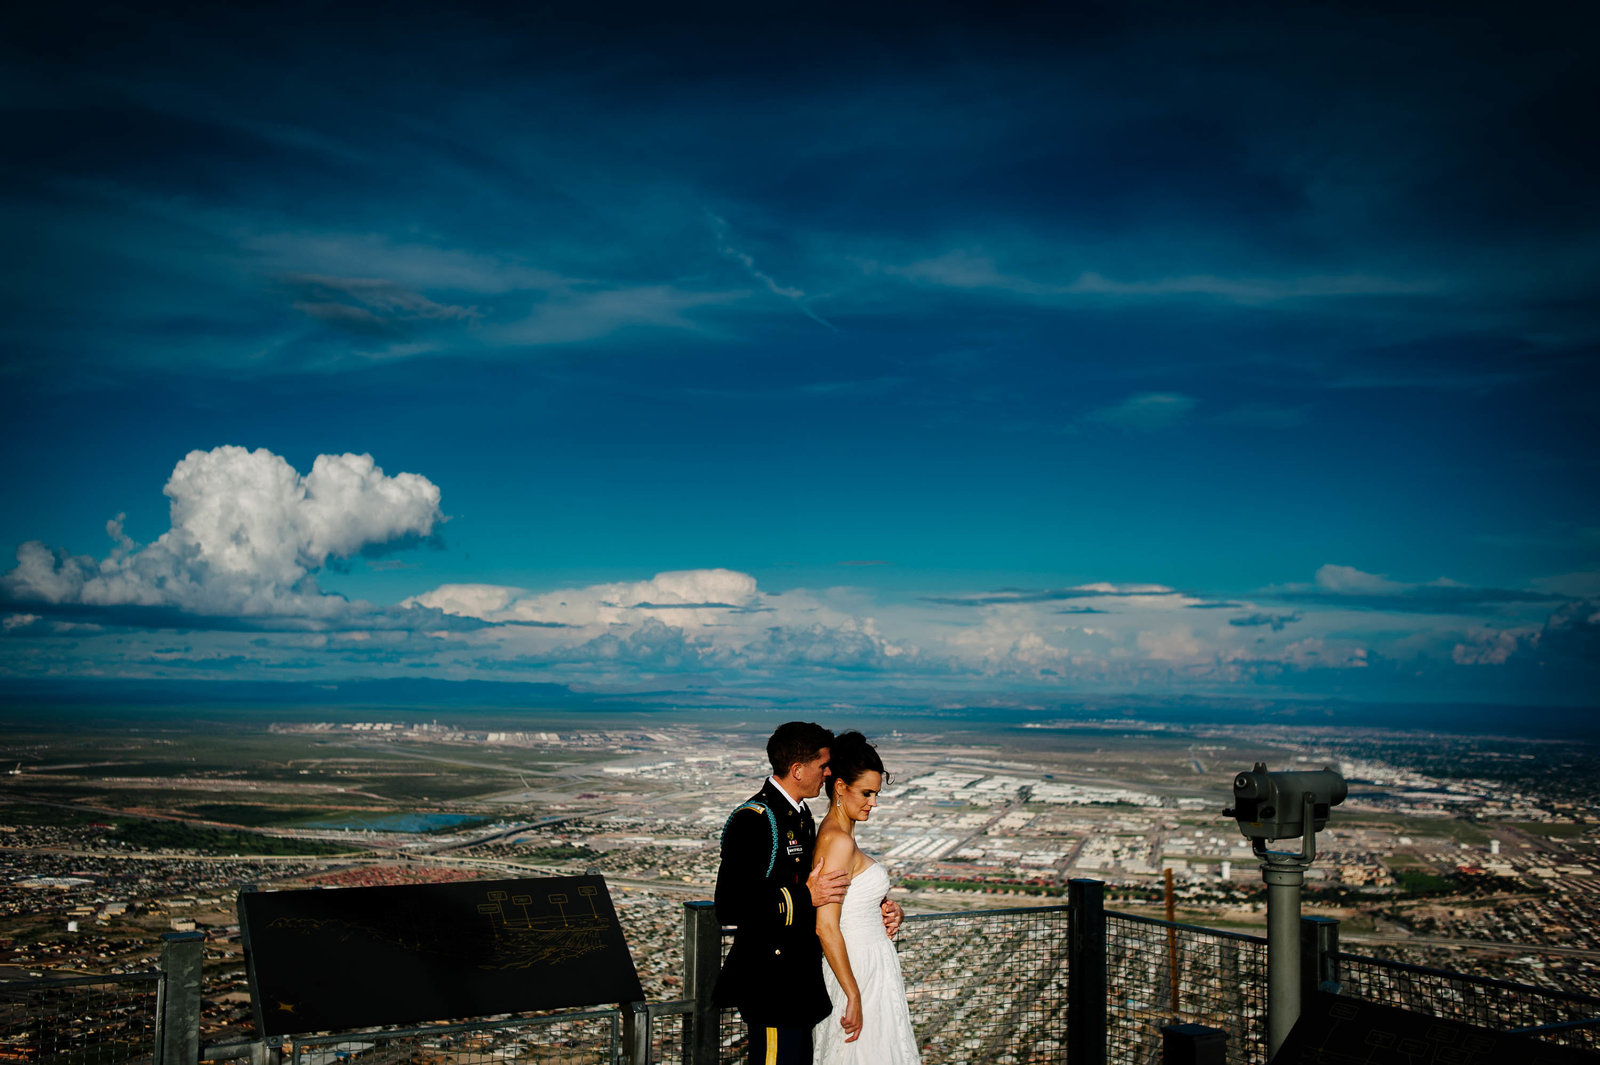 300-El-paso-wedding-photographer-El Paso Wedding Photographer_P09